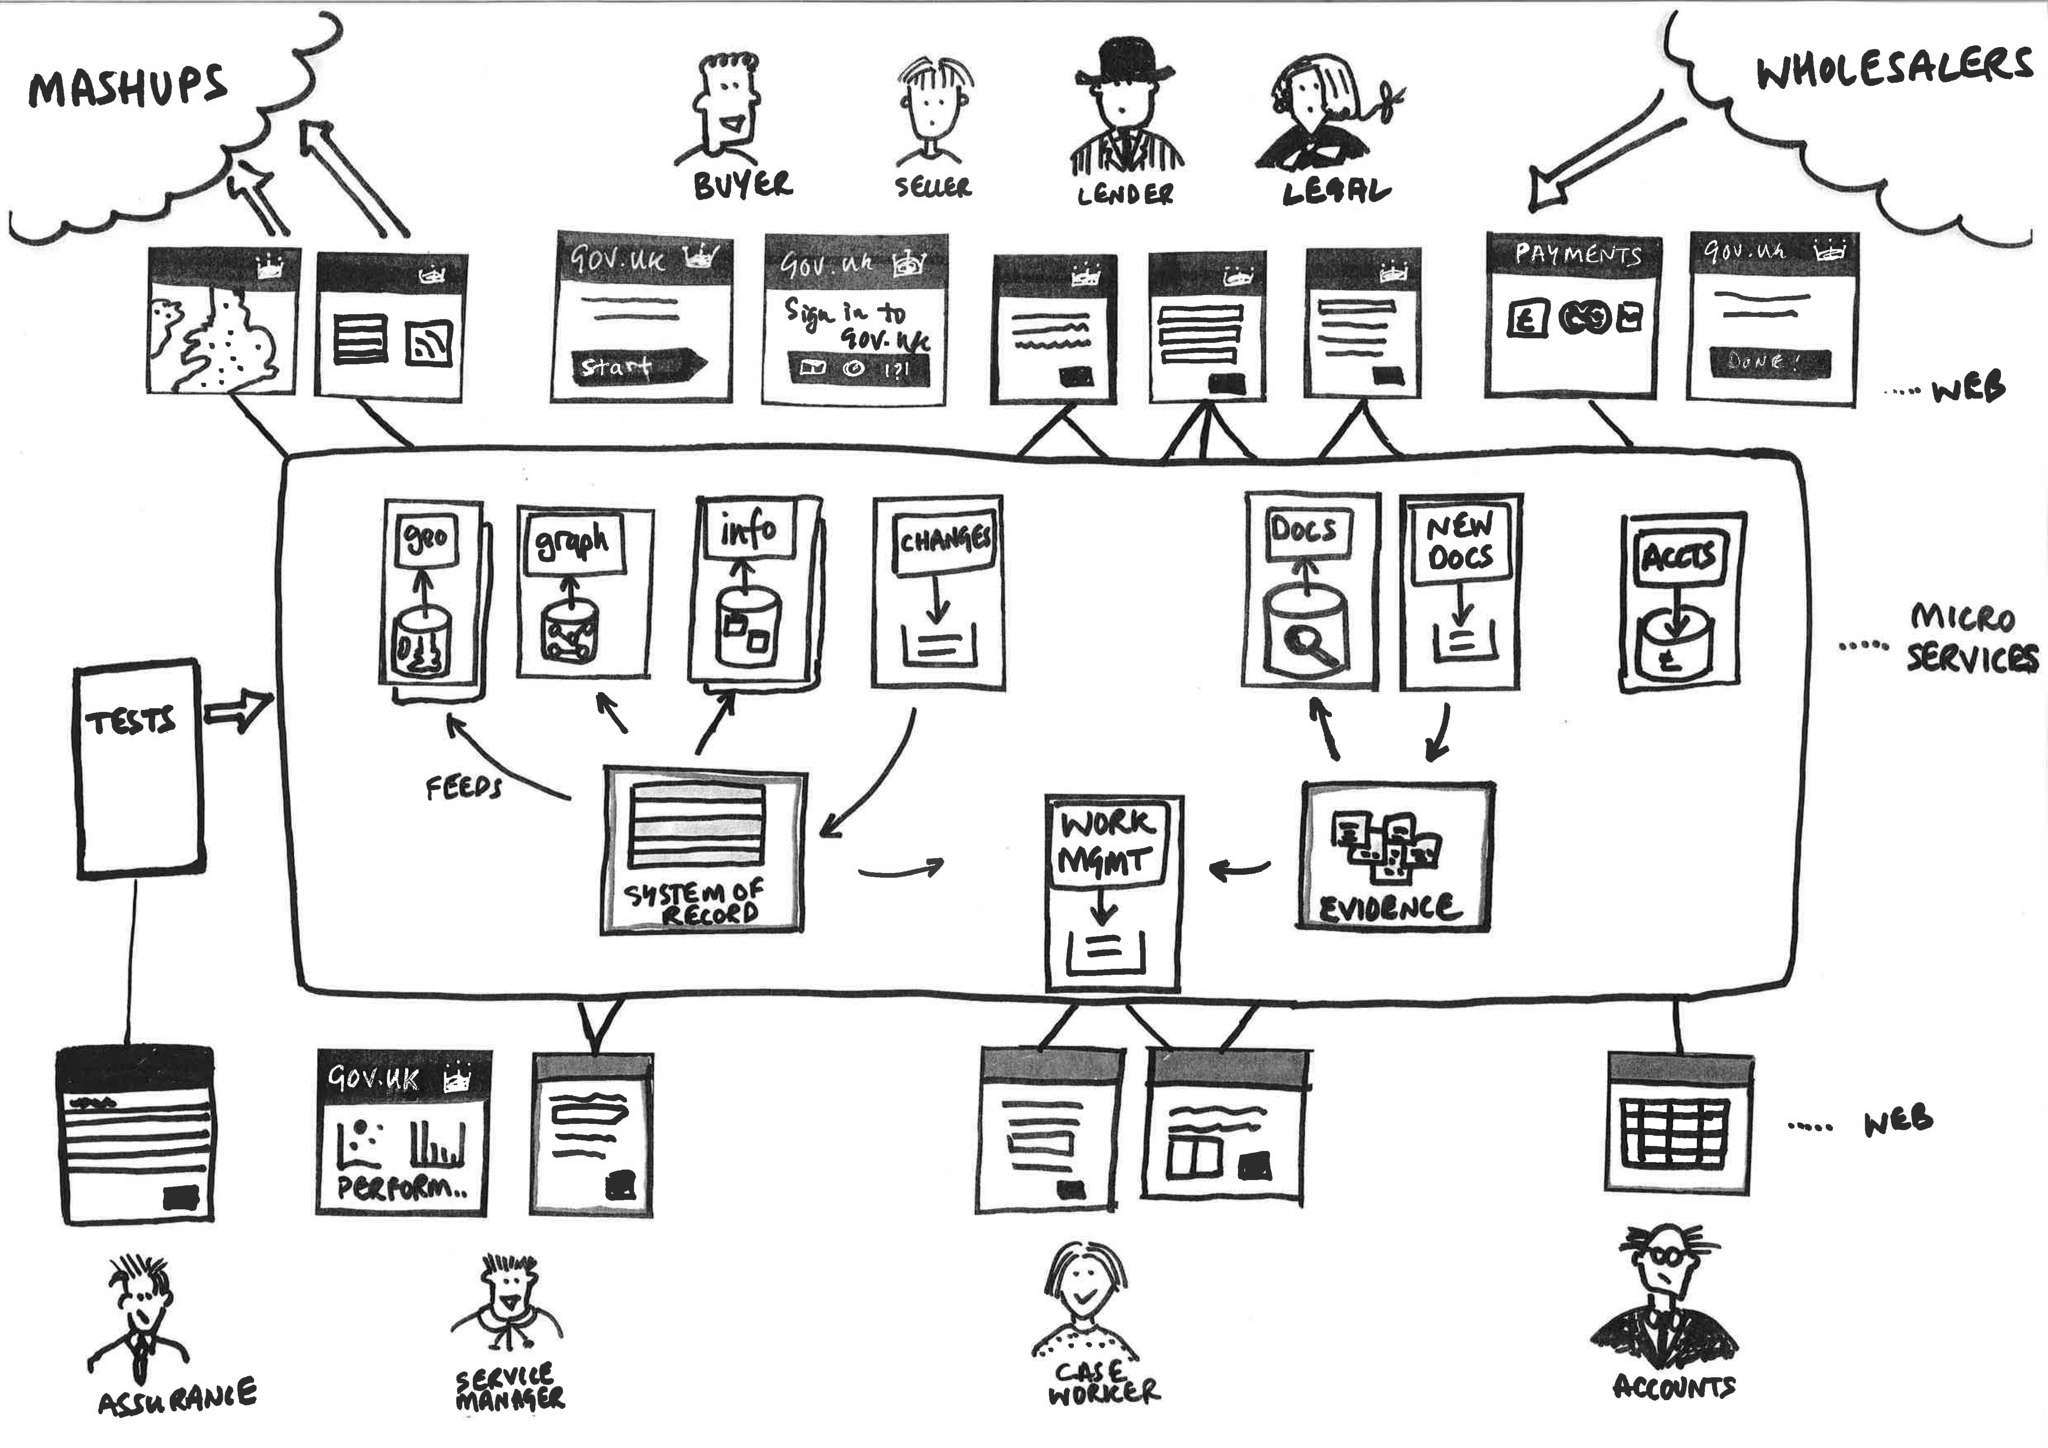 Microservices drawing